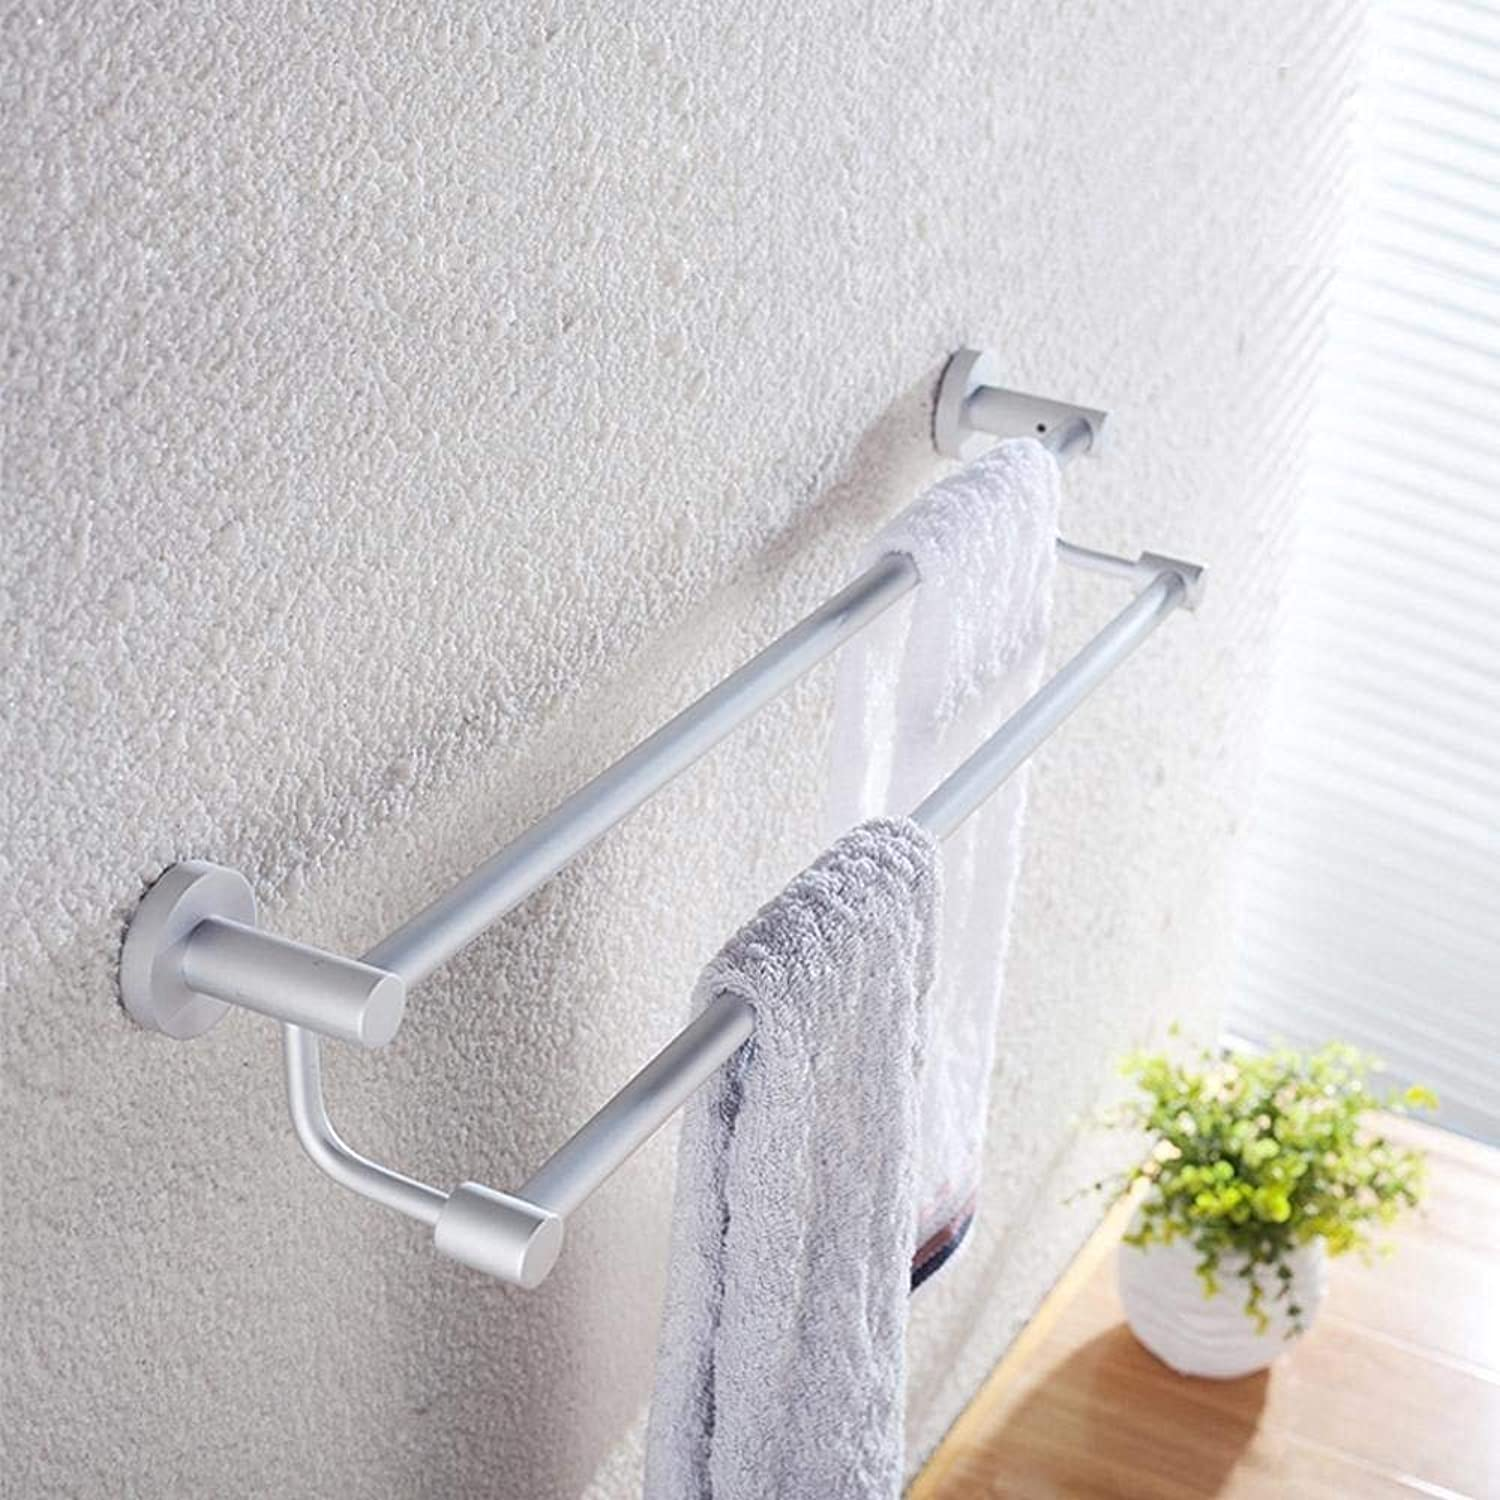 The Aluminum, The Space of Bathroom, Double Dry-Towels Rack